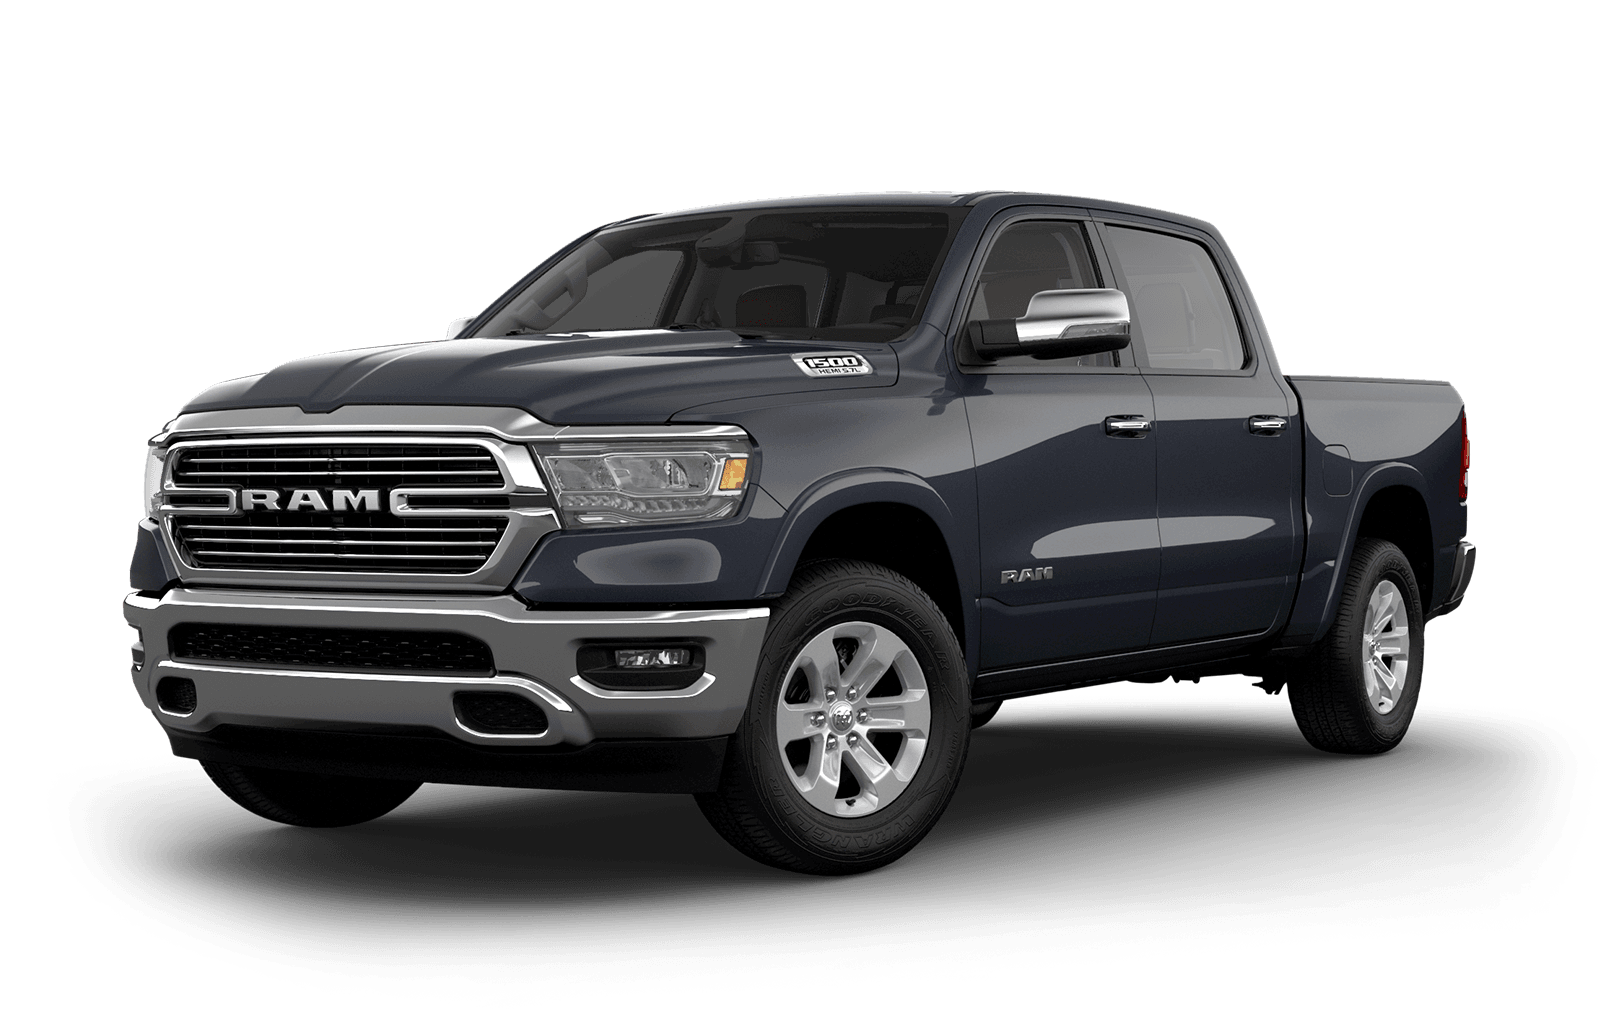 2020 Ram 1500 colour Maximum Steel Metallic